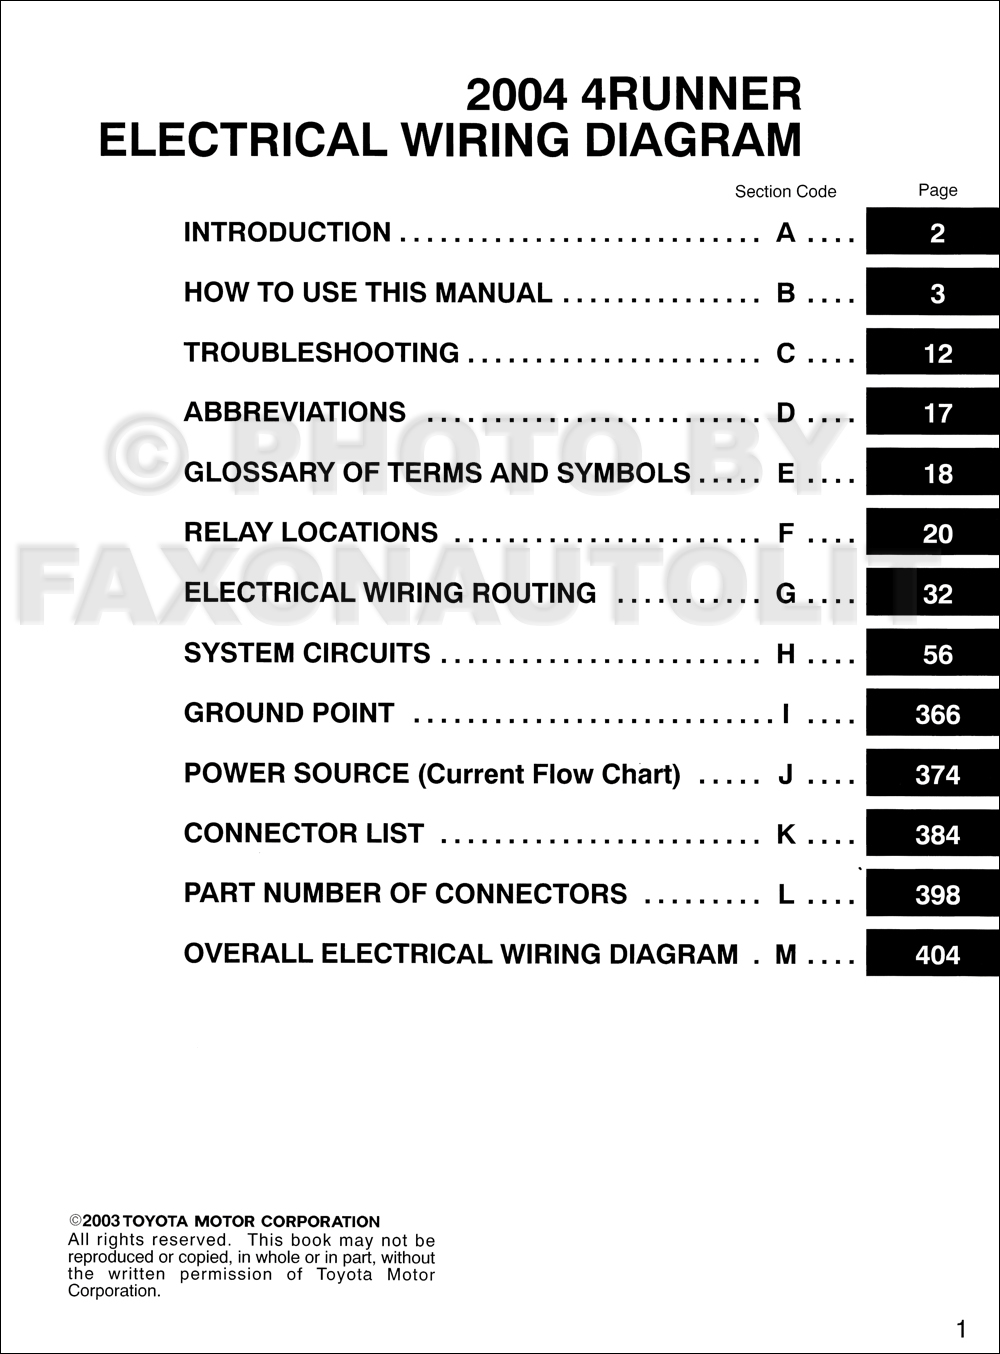 1998 toyota tacoma wiring diagram solidfonts toyota tacoma 1996 to 2017 fuse box diagram yotatech